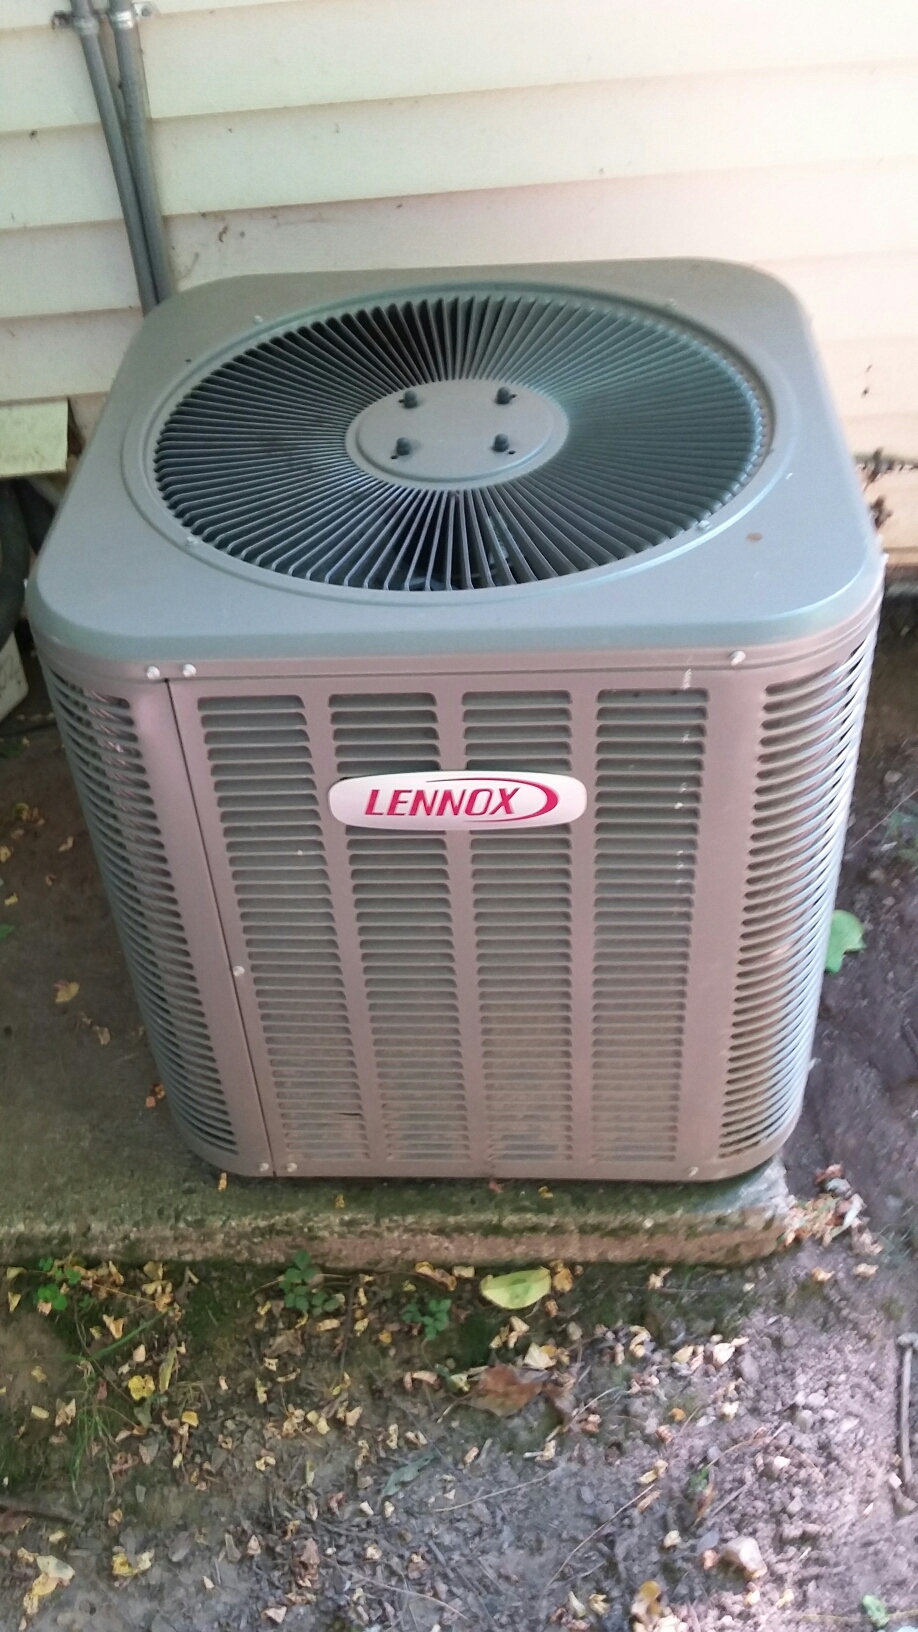 Yardley, PA - Performed an ac maintenance on a Lennox split system.